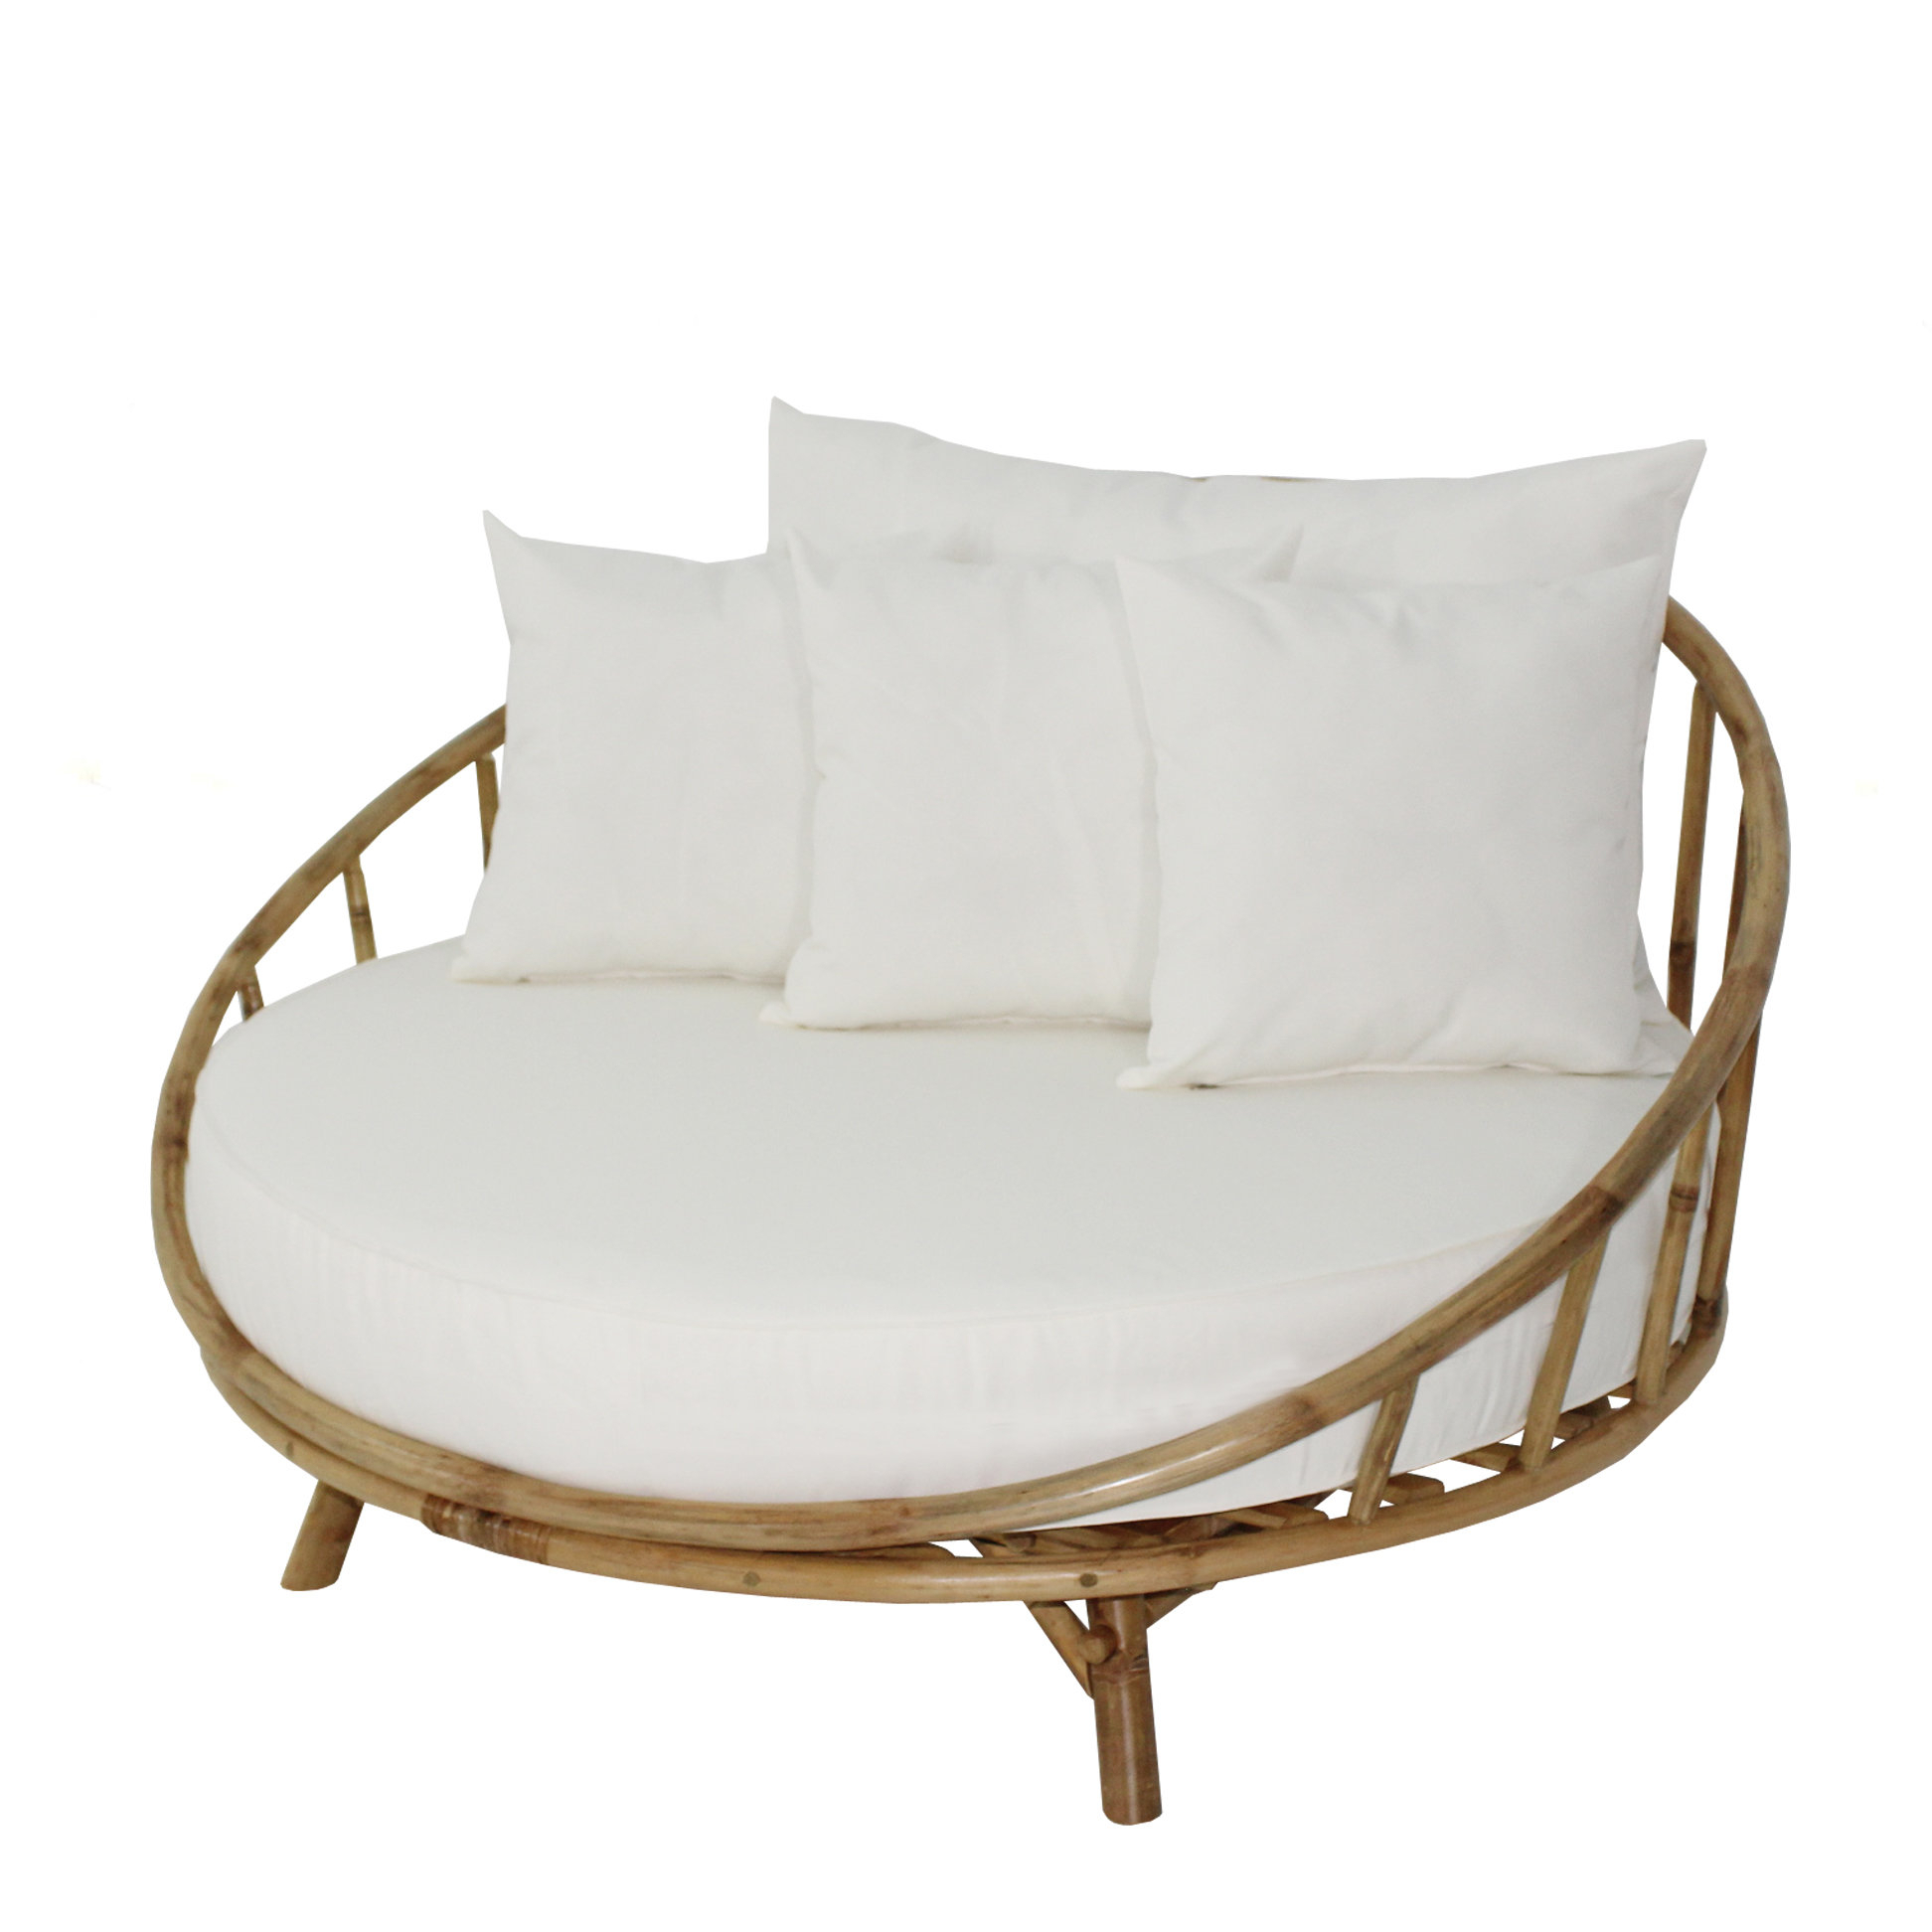 Olu Bamboo Large Round Patio Daybeds With Cushions Throughout Famous Olu Bamboo Large Round Patio Daybed With Cushions (View 1 of 20)